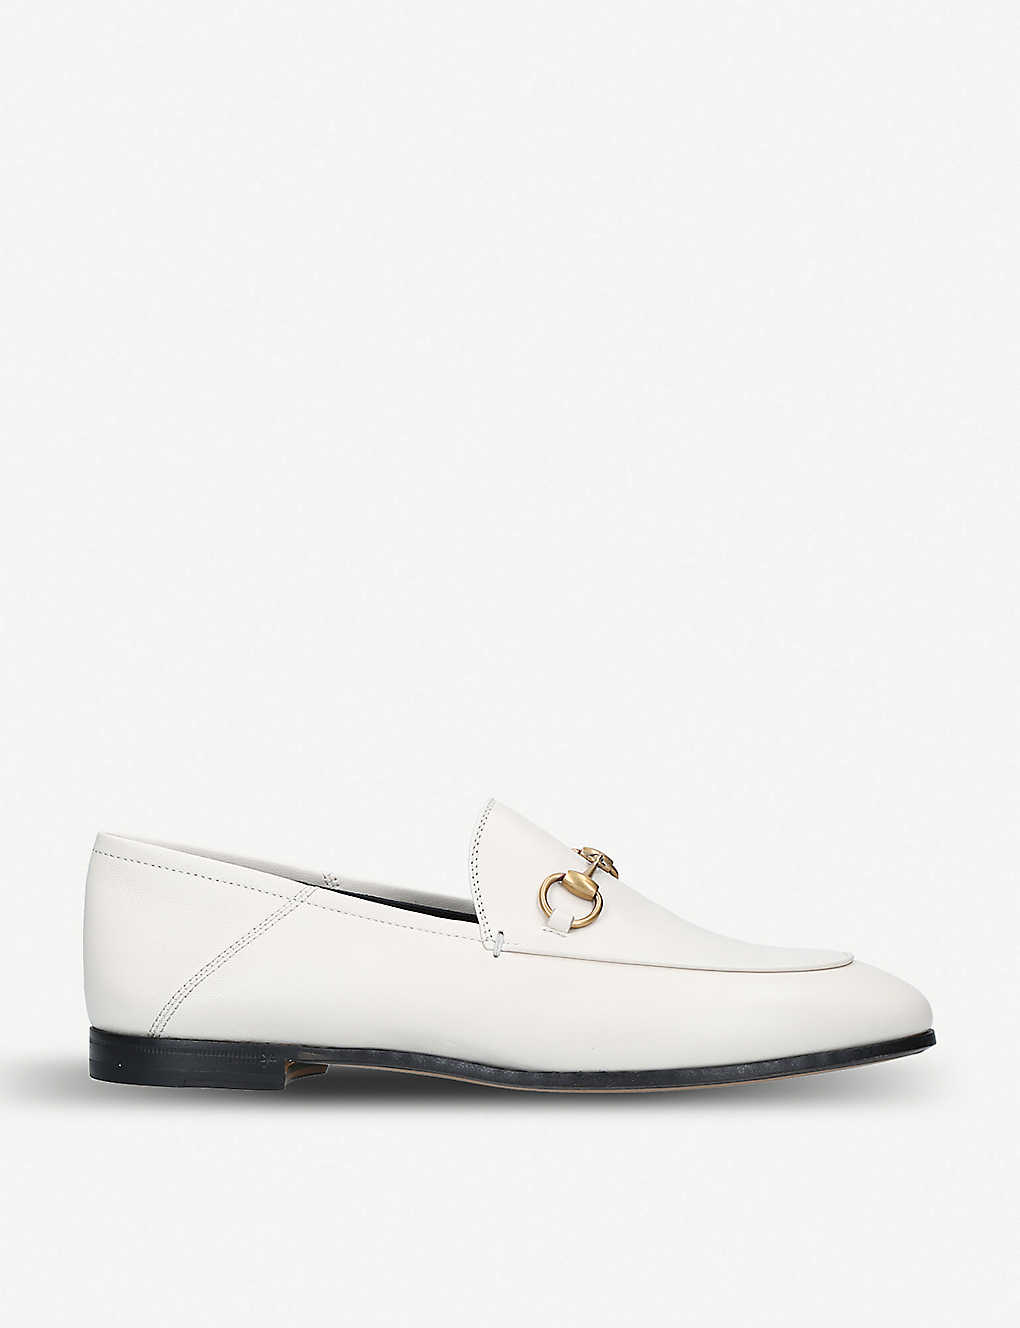 Gucci Flats Brixton collapsible leather loafers